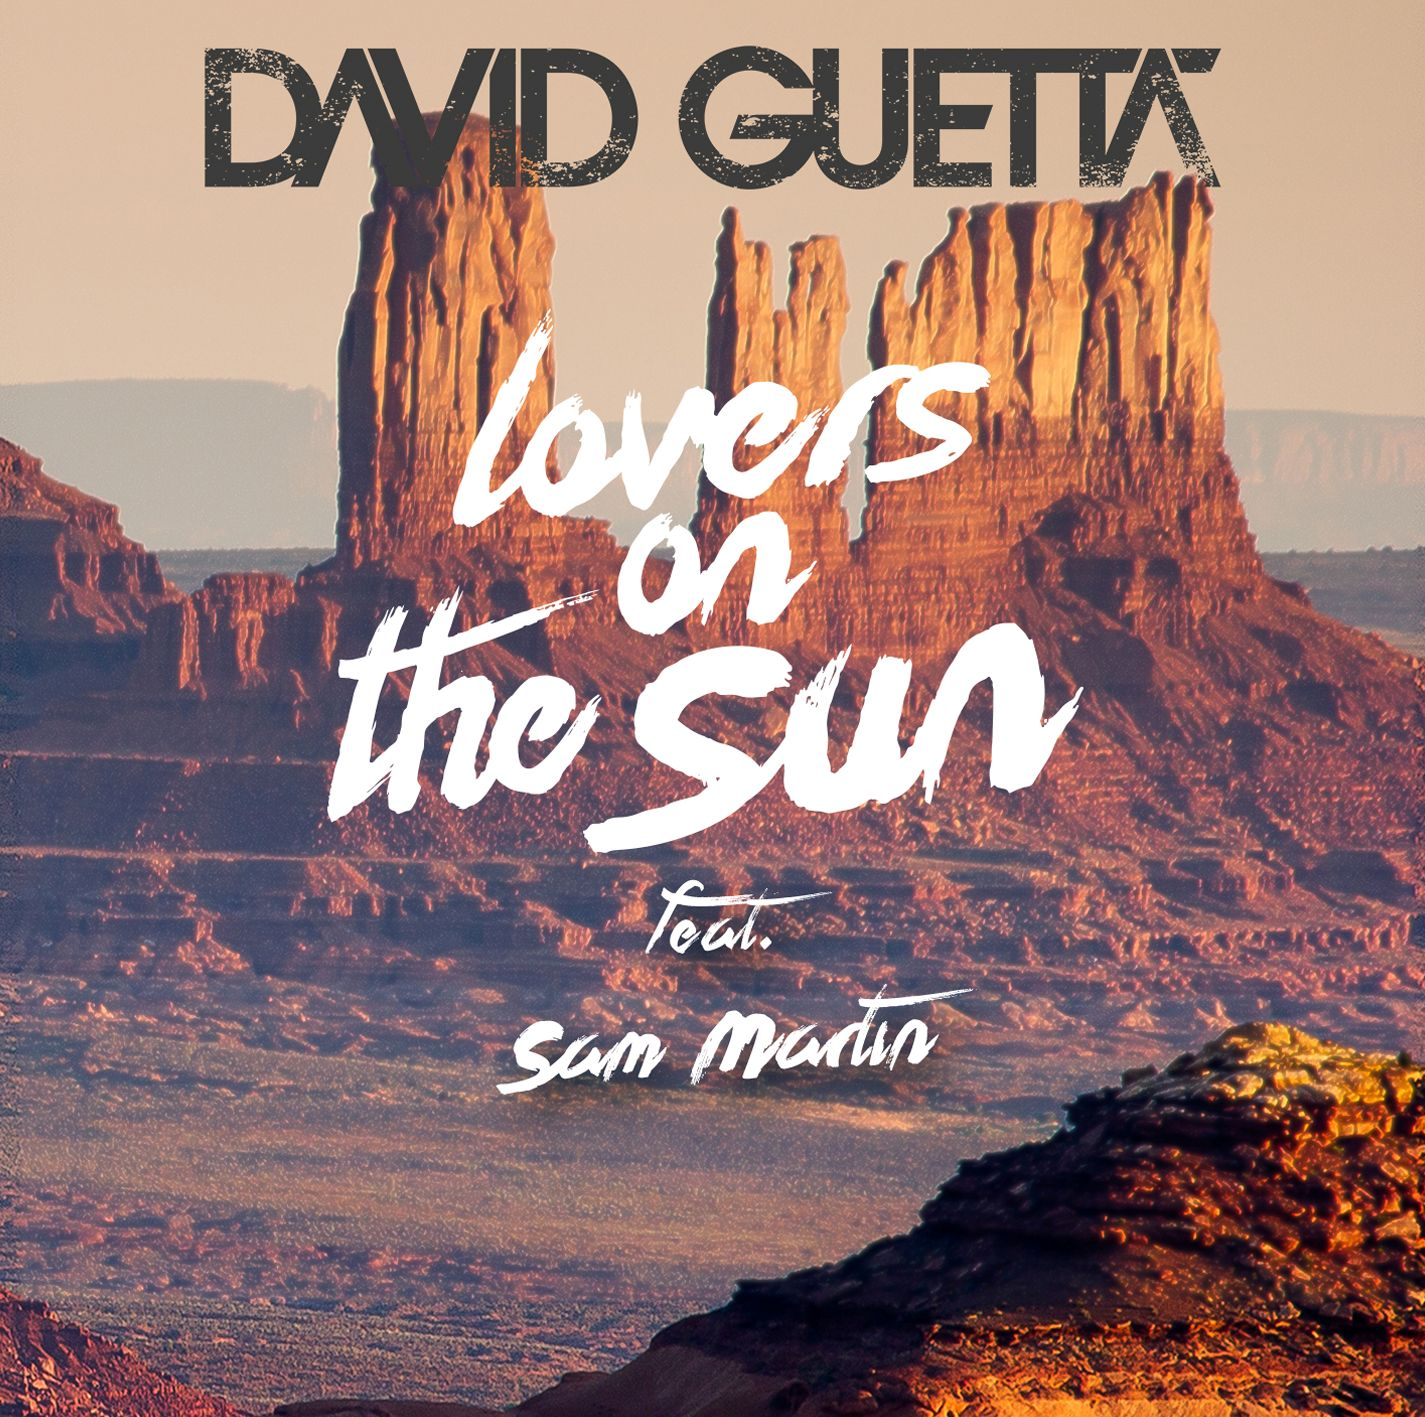 David Guetta 'Lovers On The Sun' ft. Sam Martin Available Now